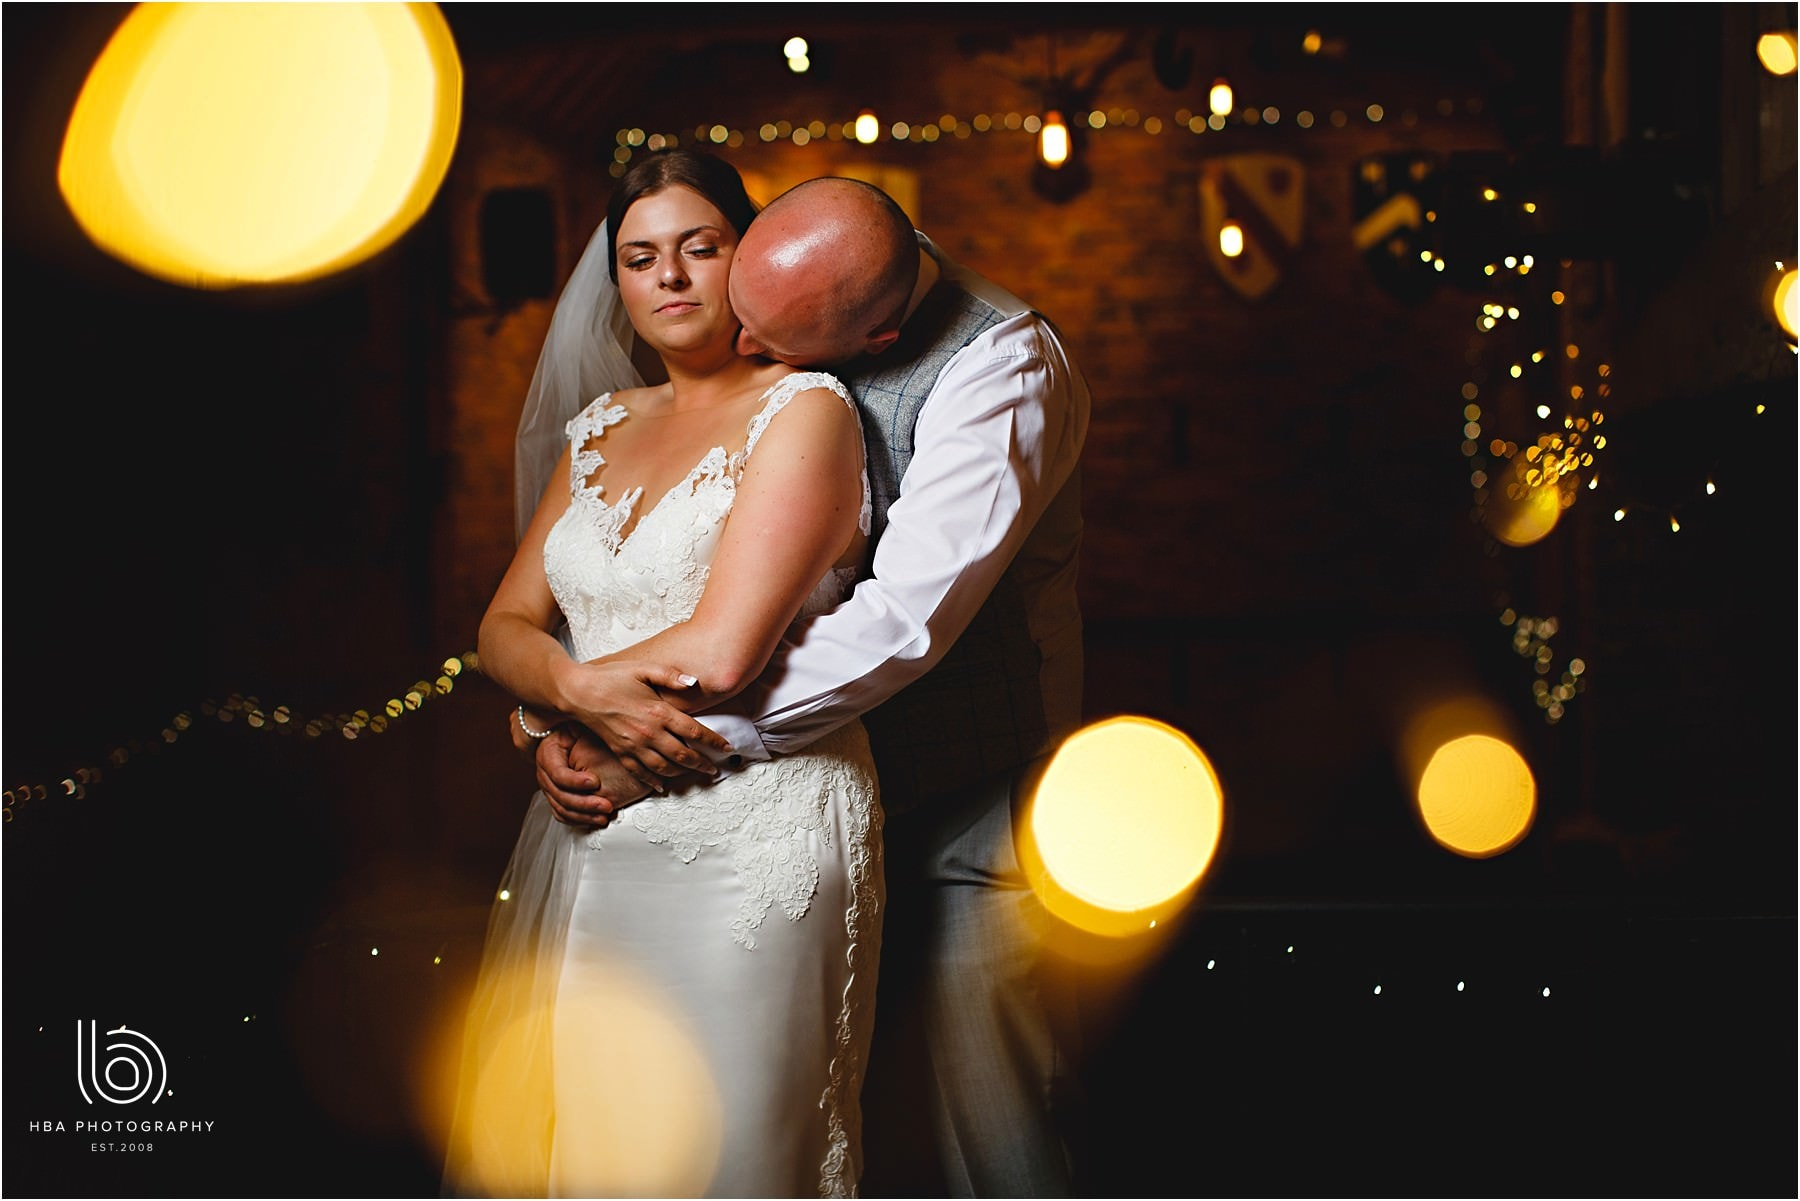 the bride & groom in twinkly lights in the Treshing barn